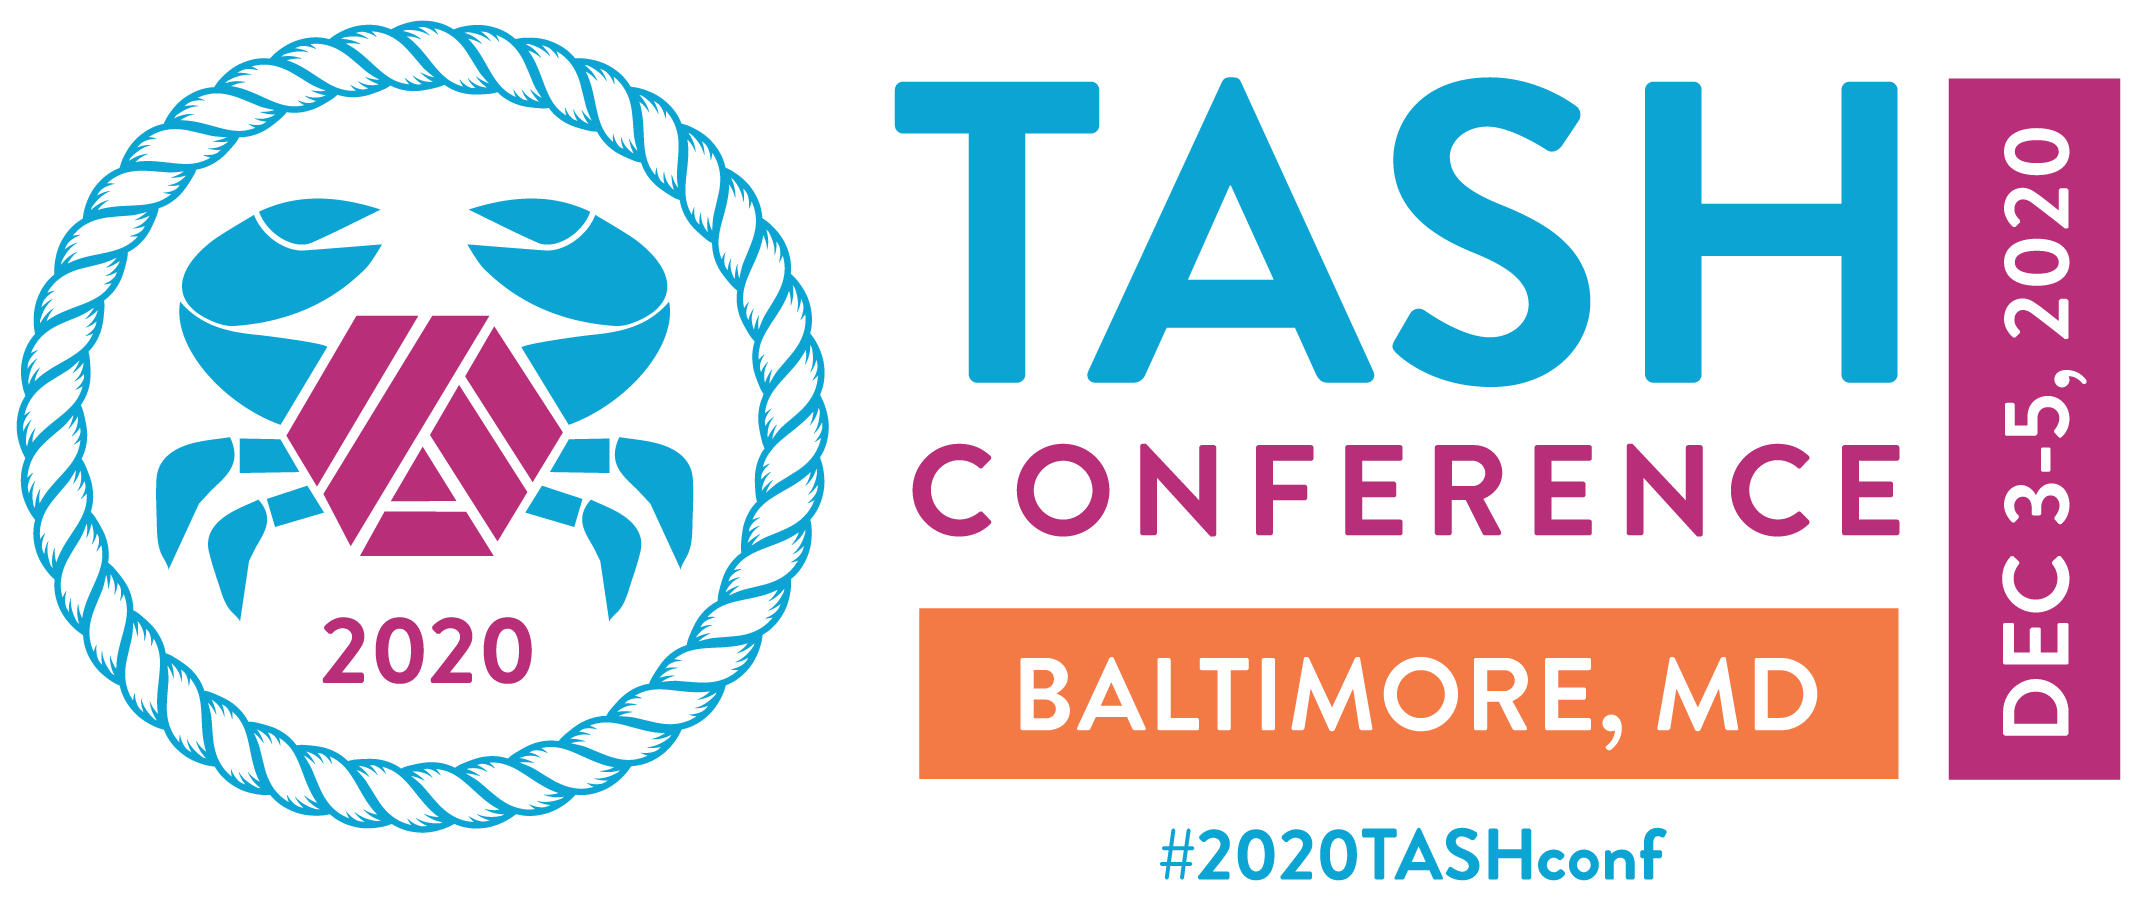 The Baltimore 2020 TASH Conference logo: an illustration of a crab with blue pinchers and legs sprouting from a purple version to the TASH Möbius strip.